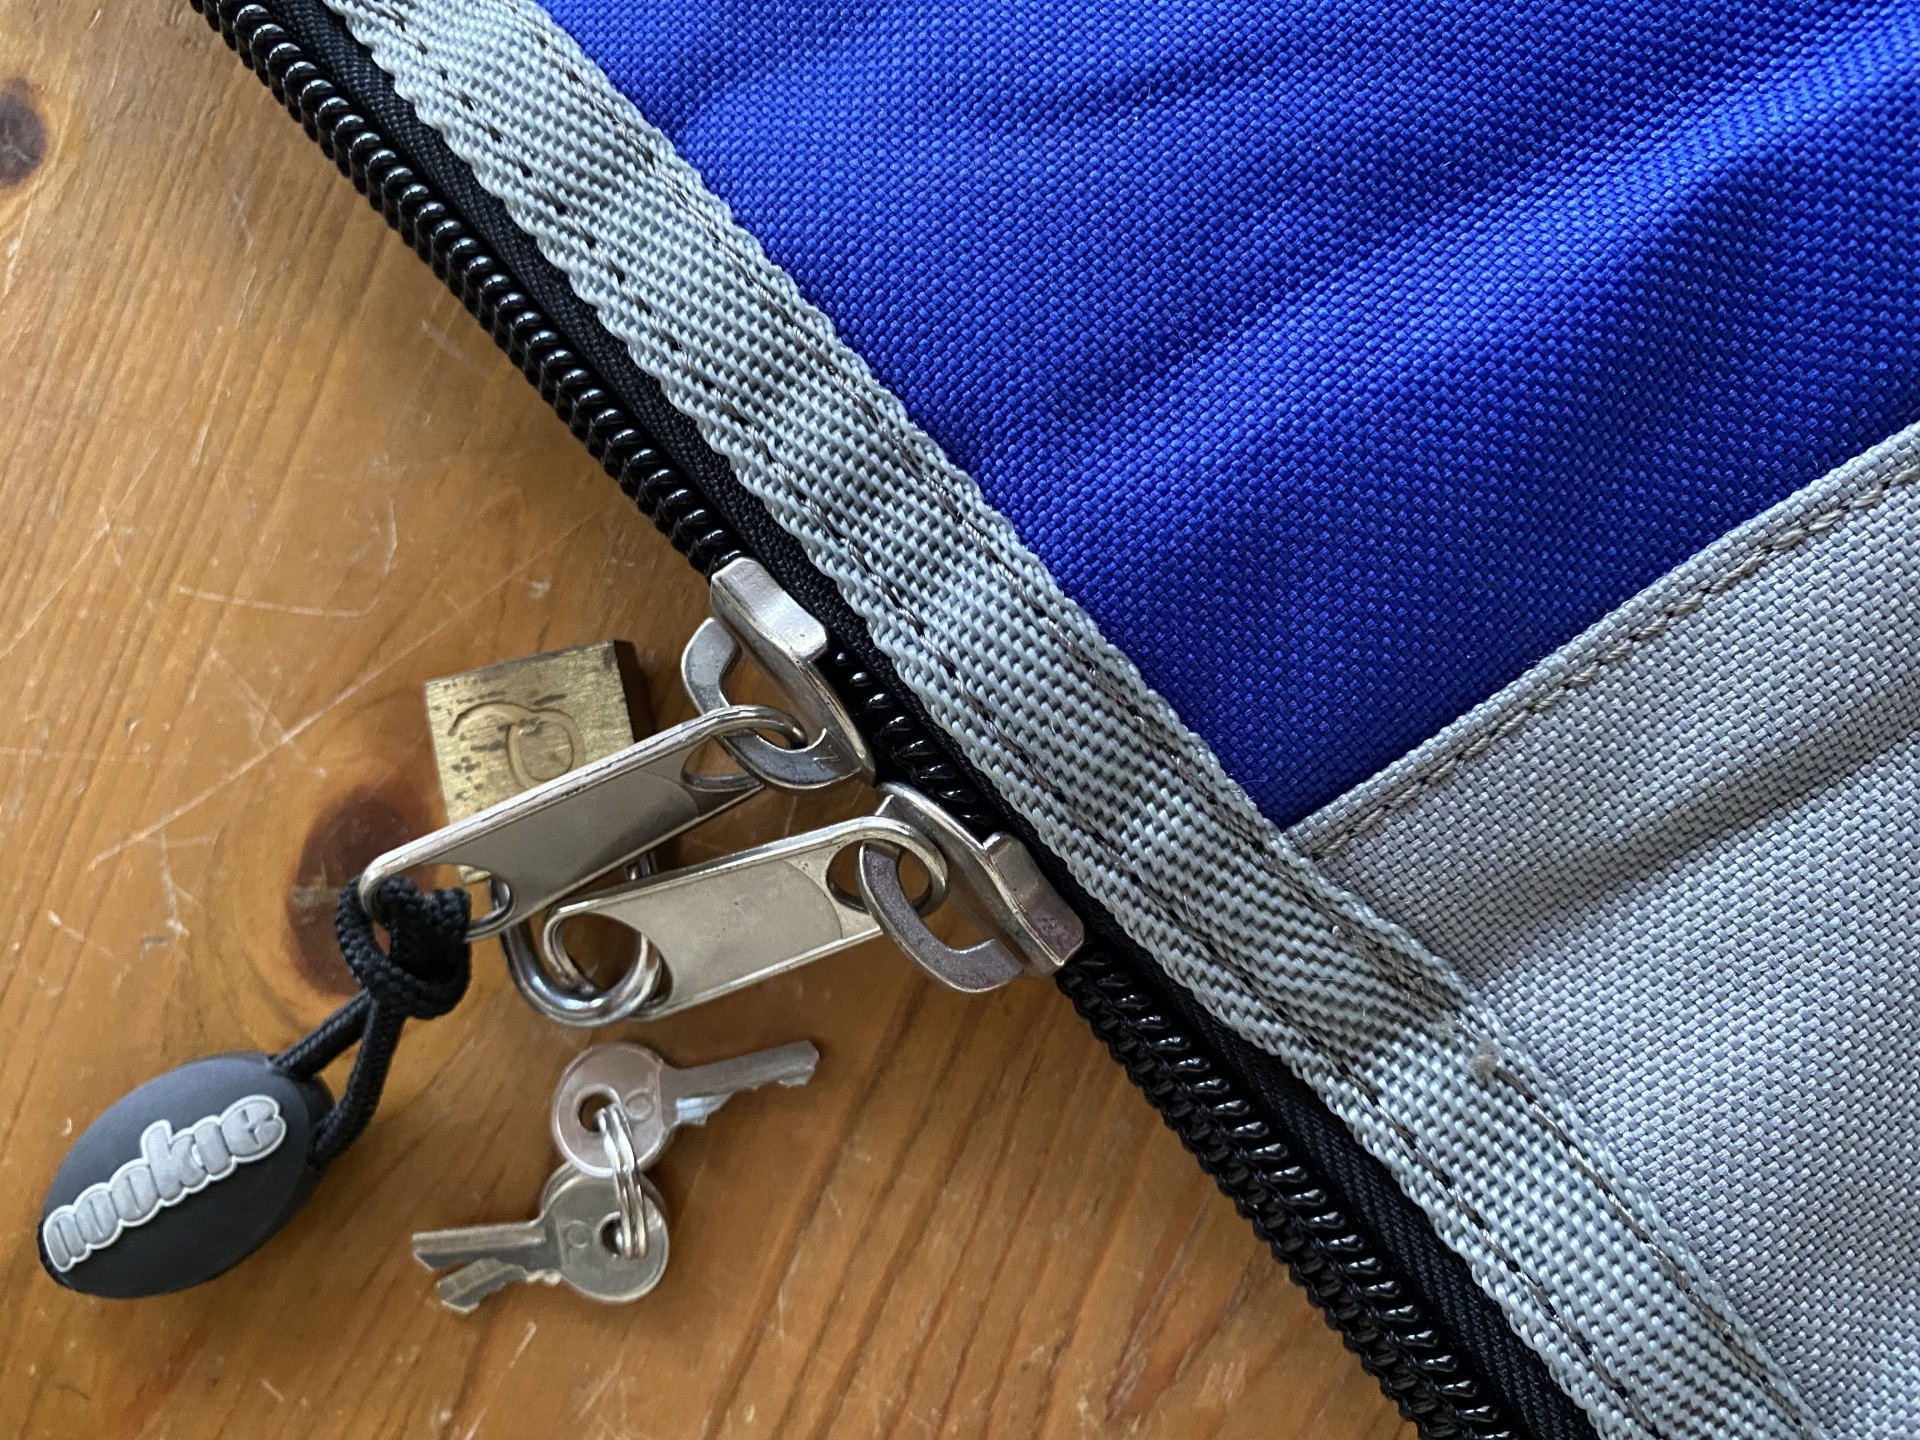 Double zip with lock & key for security